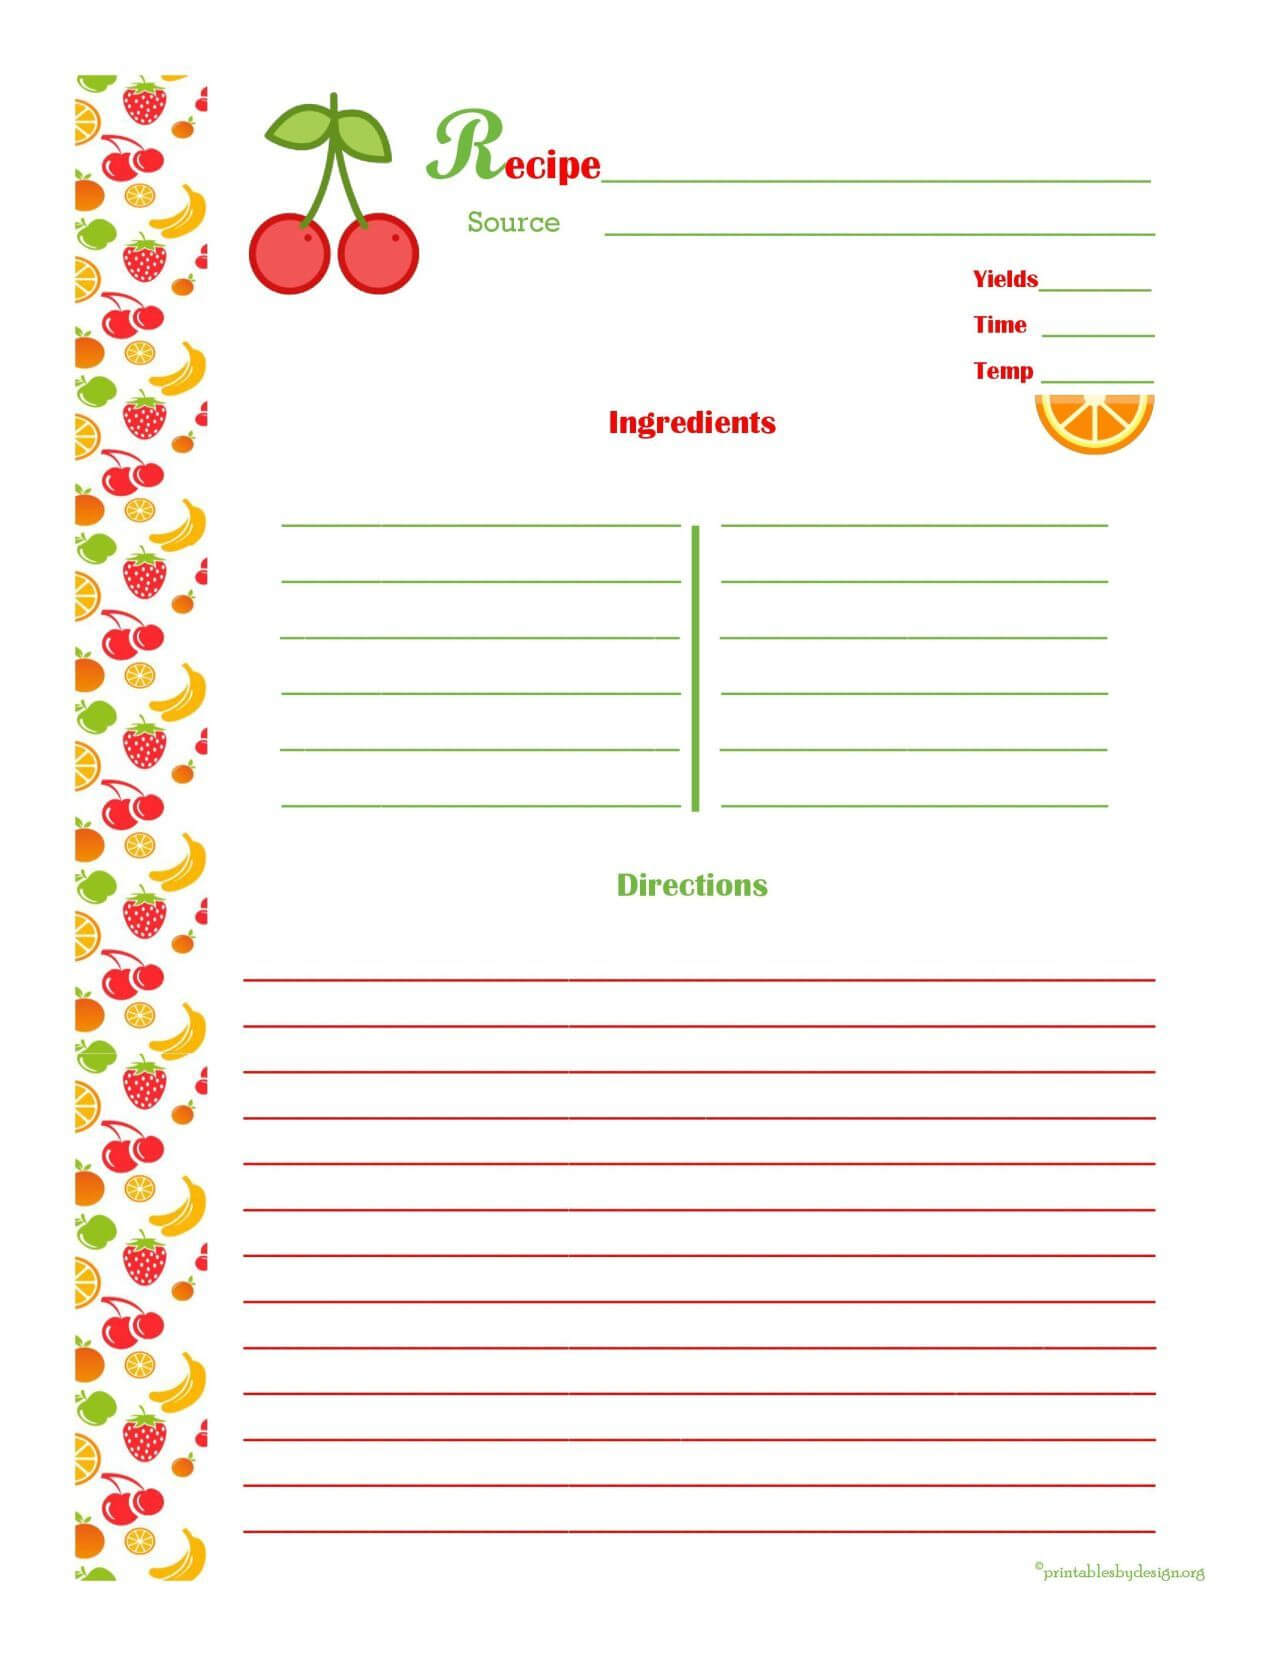 Free Editable Recipe Card Templates For Microsoft Word pertaining to Microsoft Word Recipe Card Template